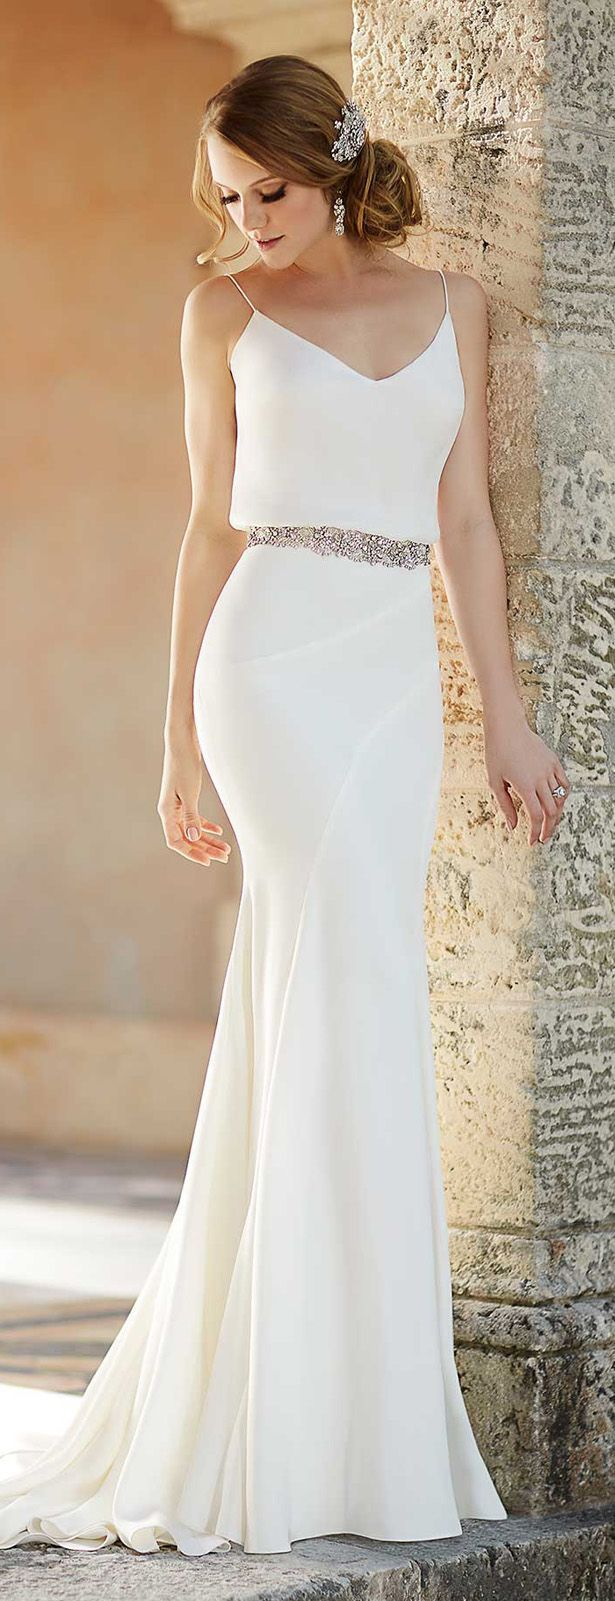 Simple Pretty Wedding Dresses Dress for Country Wedding